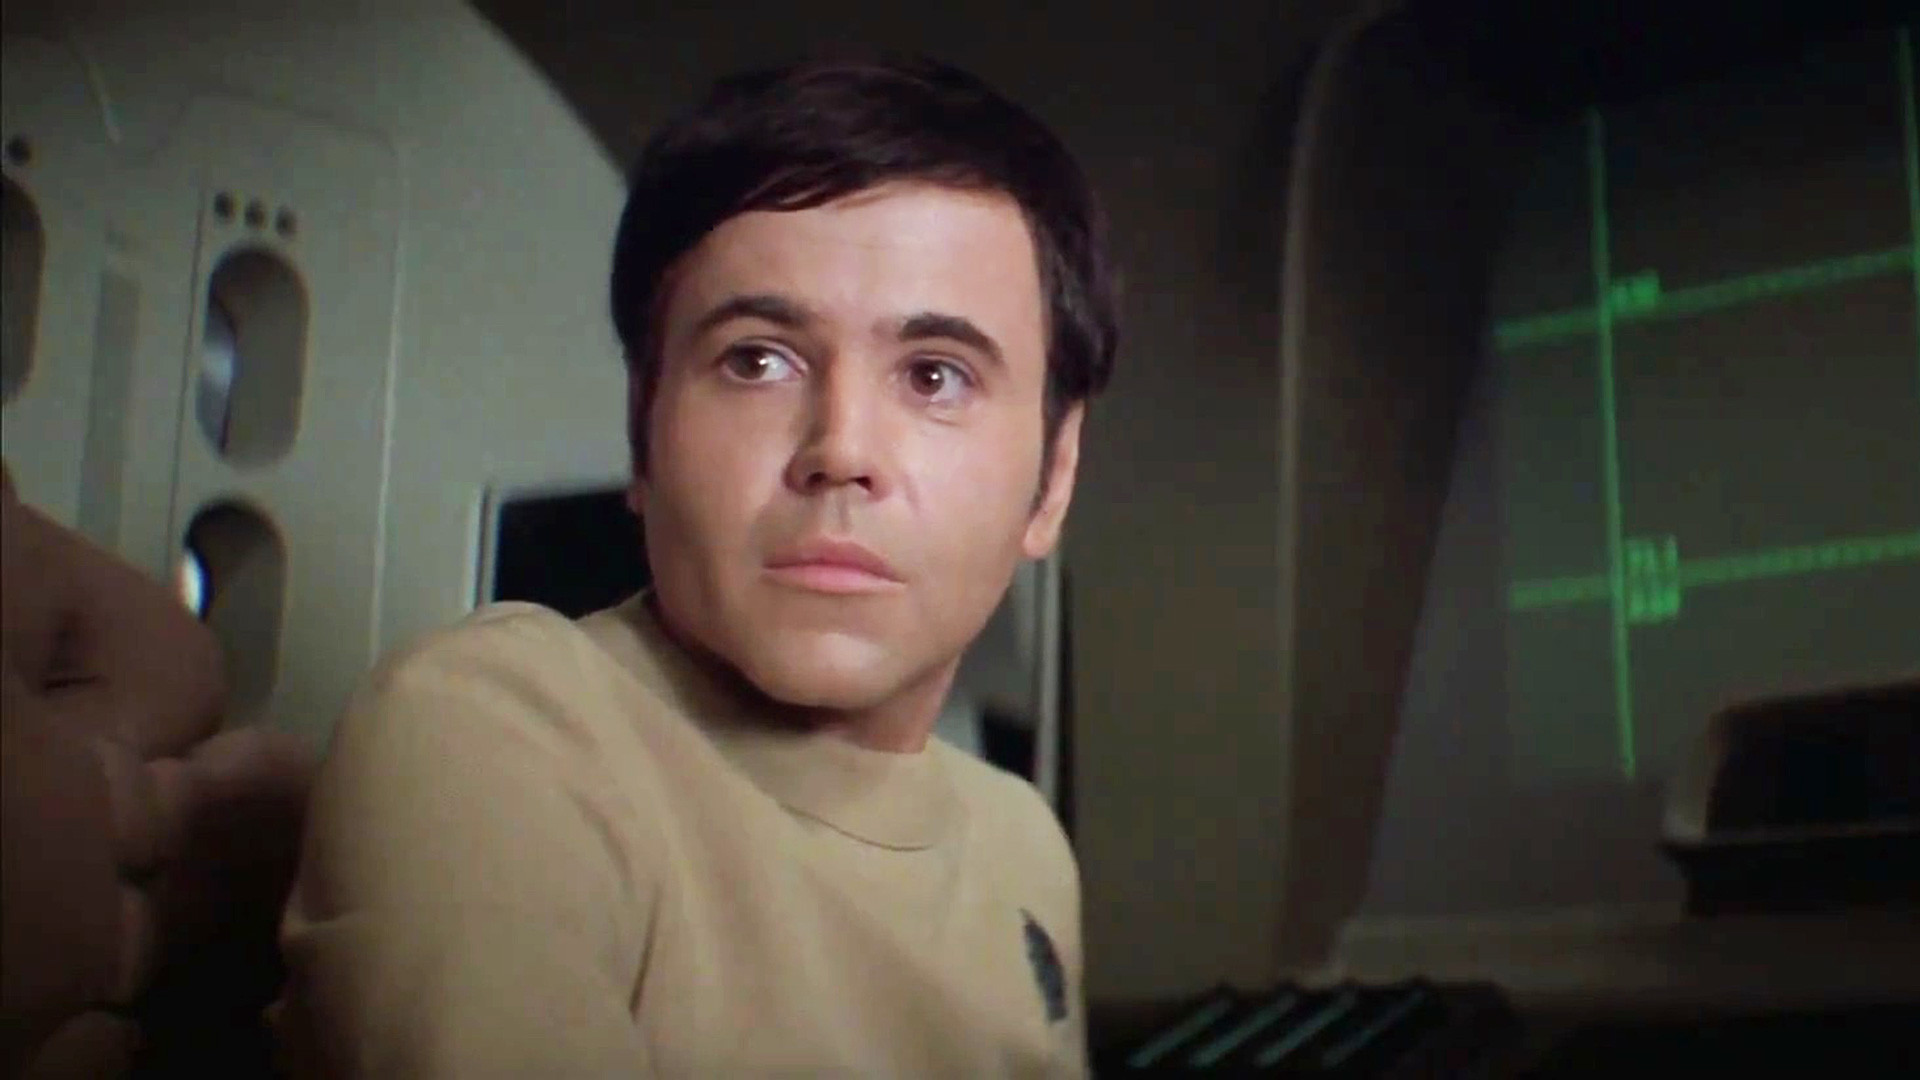 Pavel Chekov, Star Trek (1979)